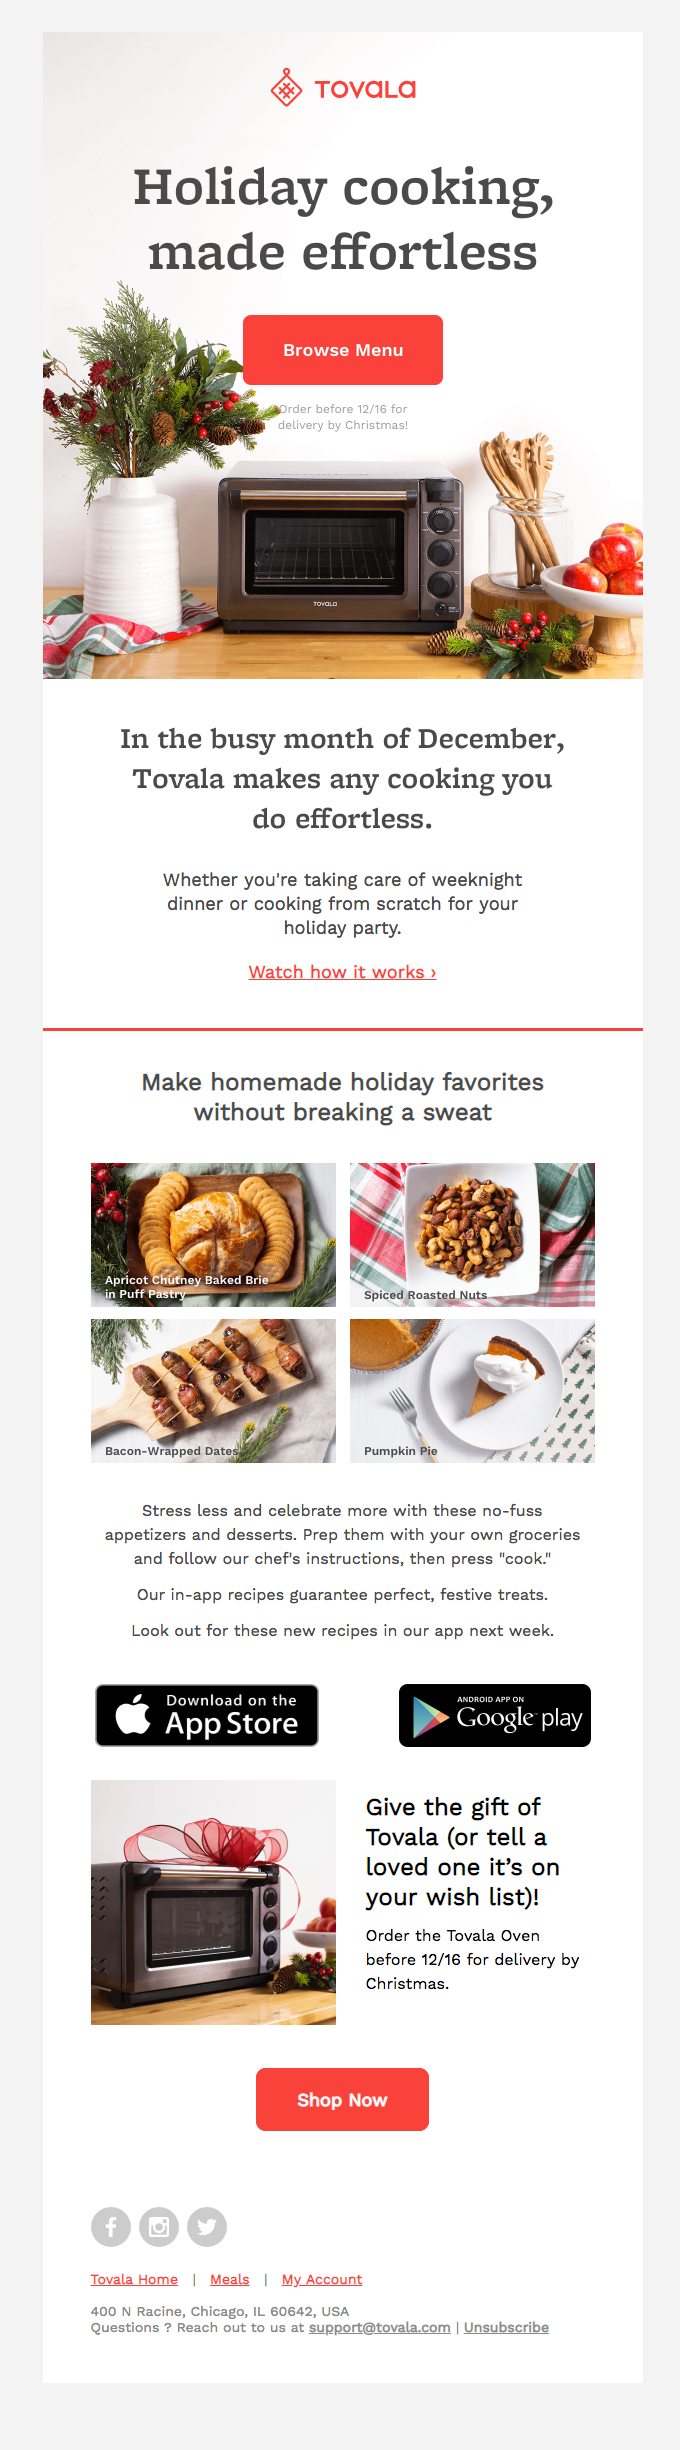 Stress Less. Celebrate More. 4+ Free Festive Recipes. 🎄